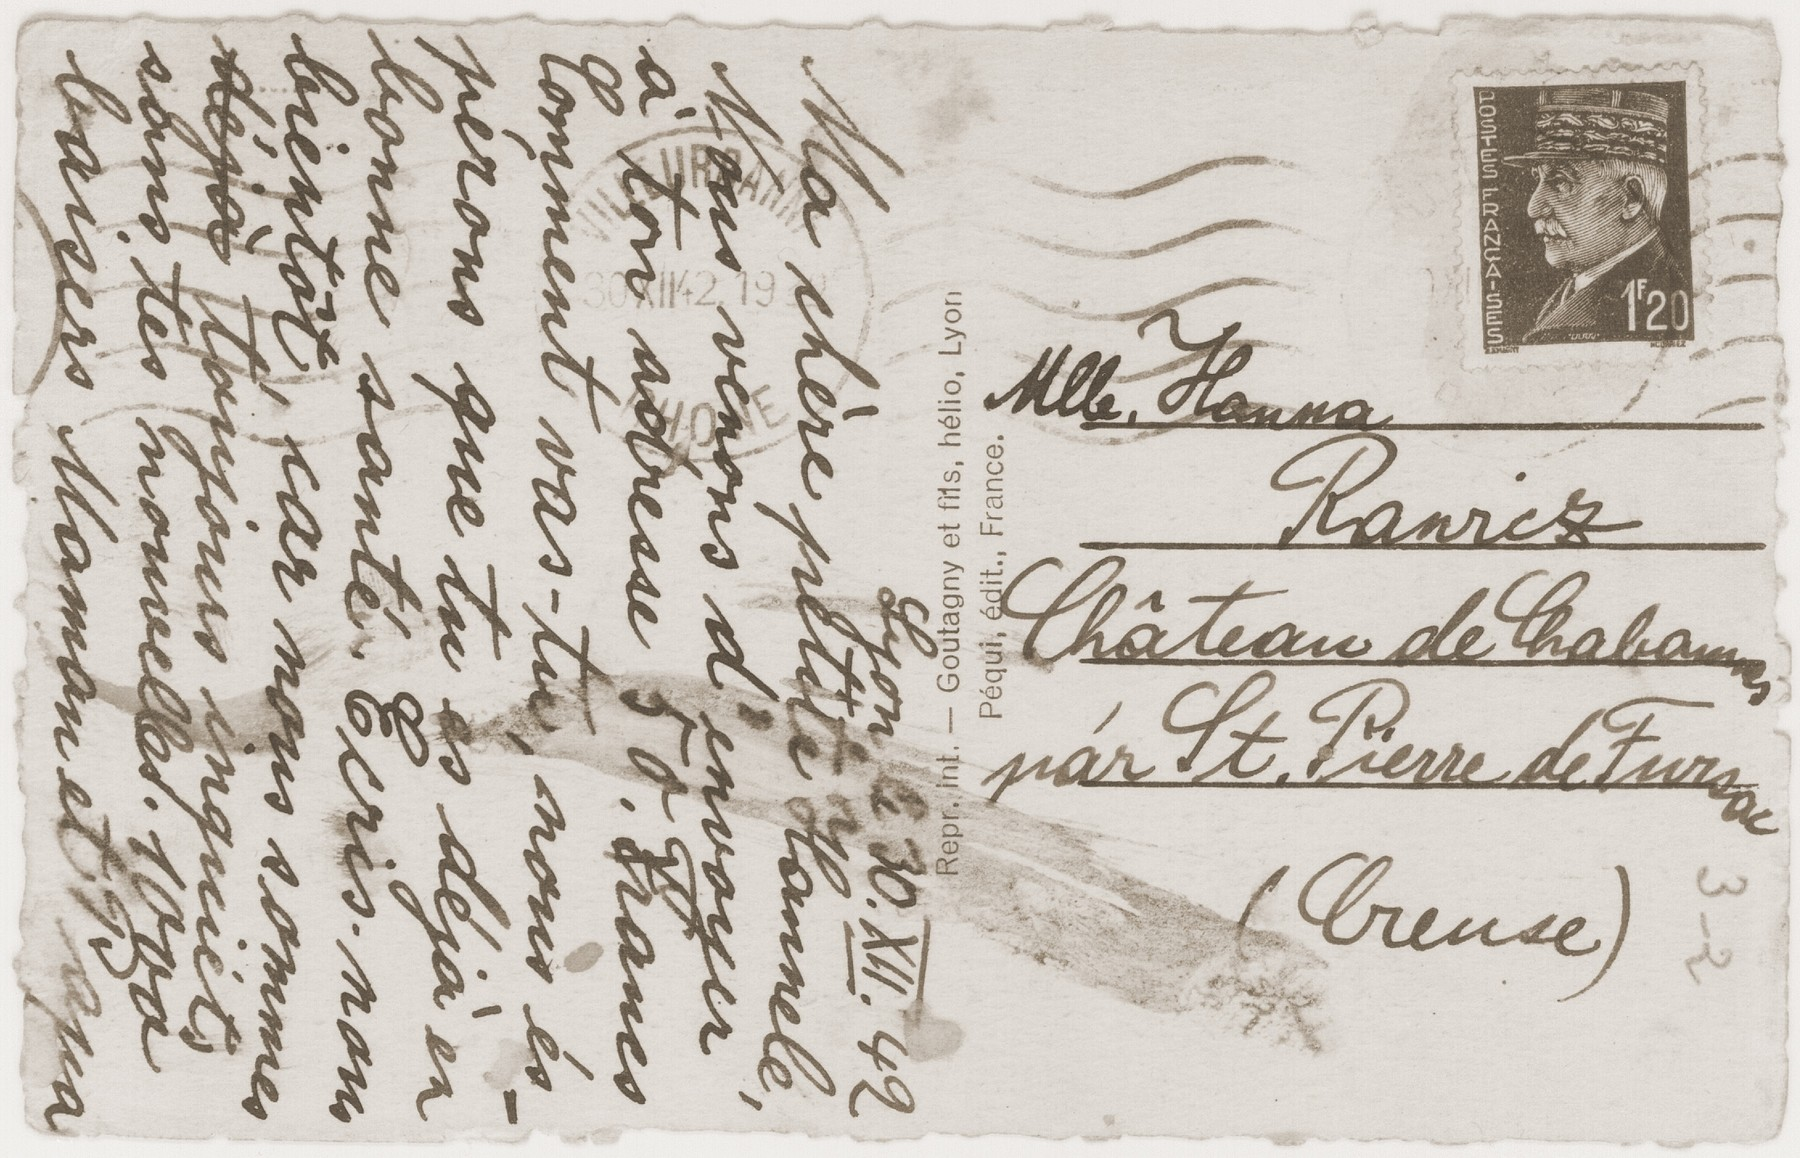 A postcard sent from Lyon by Jakob and Gisa Rawicz to their daughter, Hanna, at the Château de Chabannes children's home.